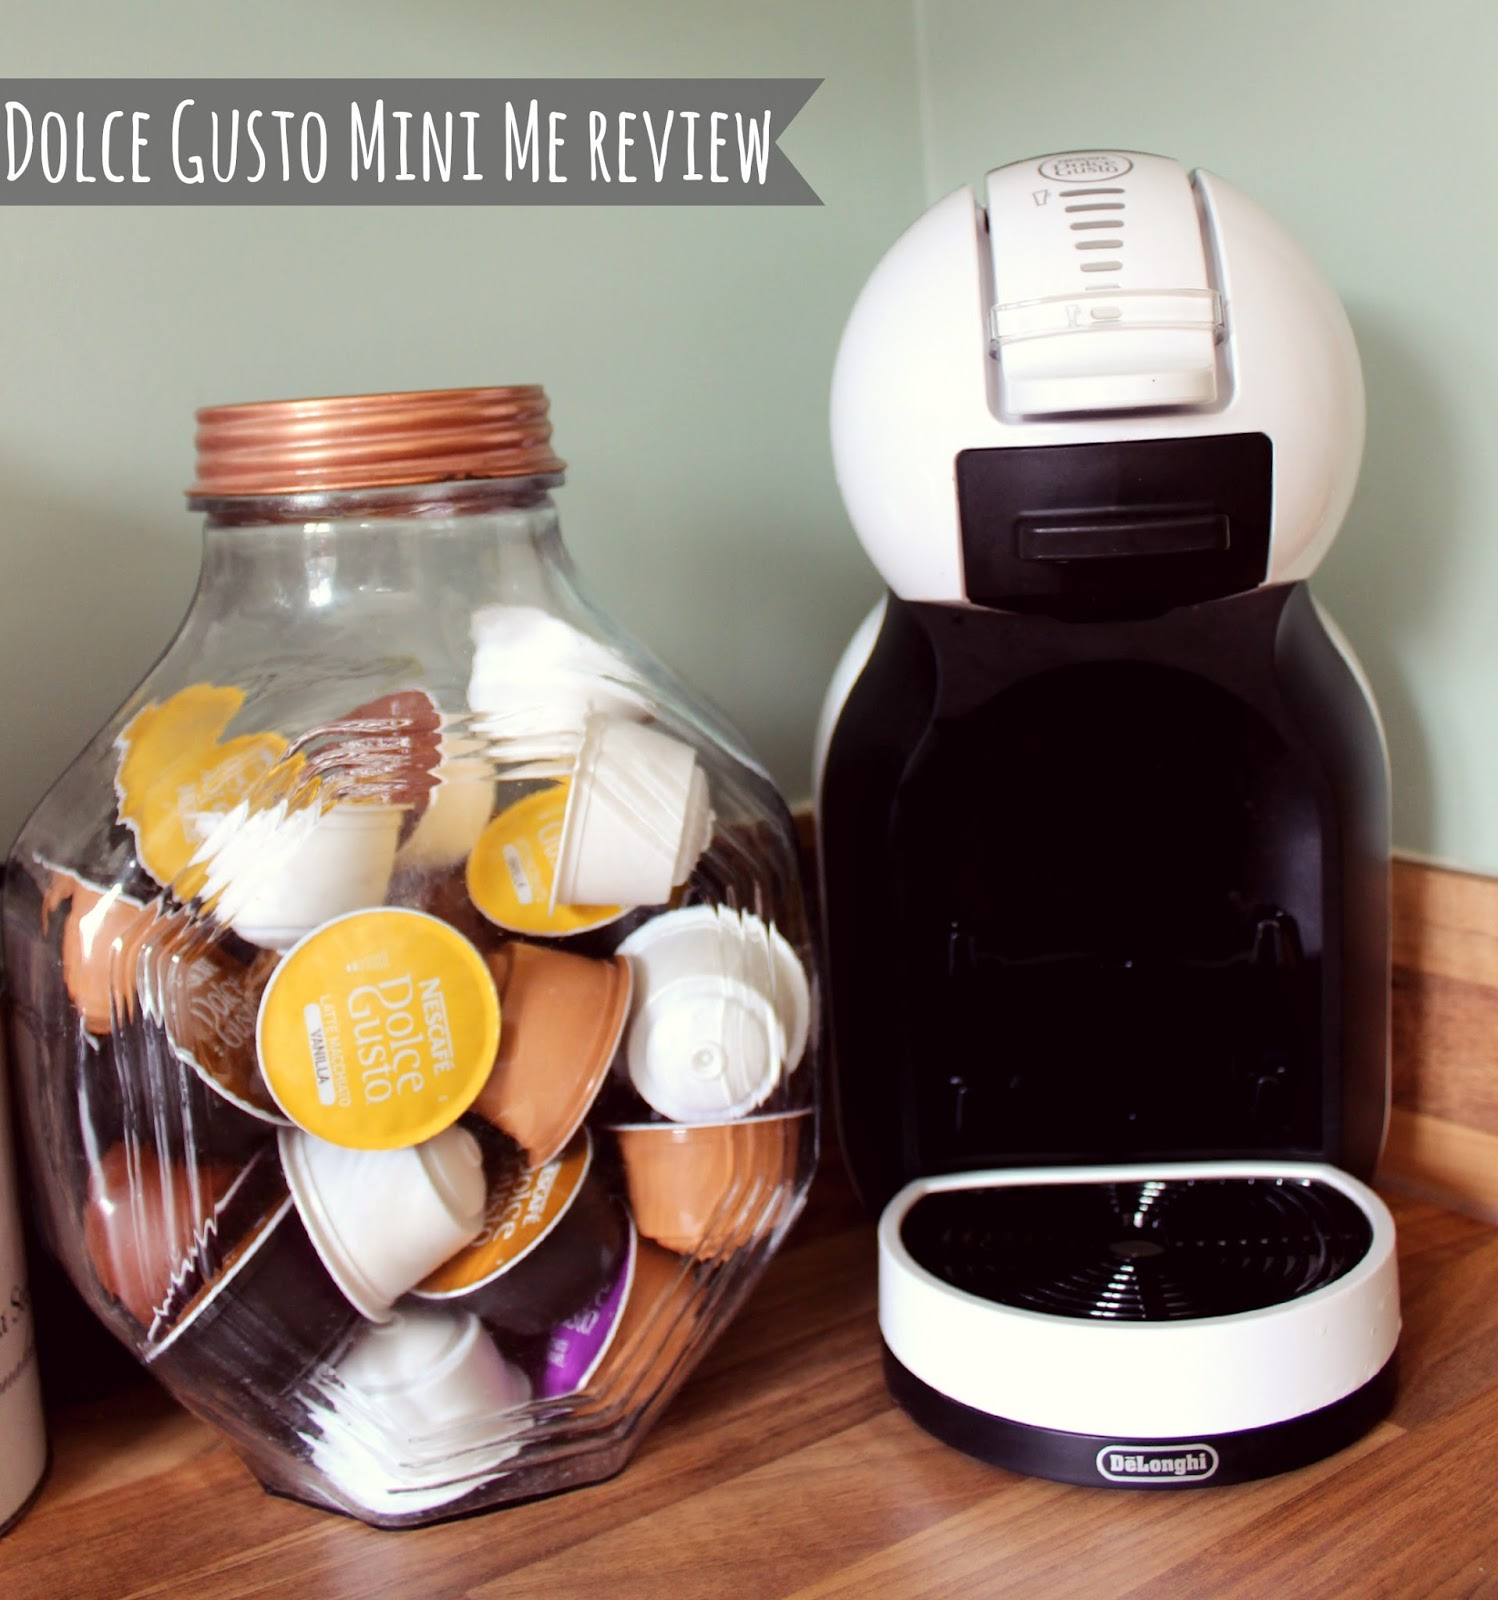 nescafe dolce gusto mini me review k elizabeth. Black Bedroom Furniture Sets. Home Design Ideas